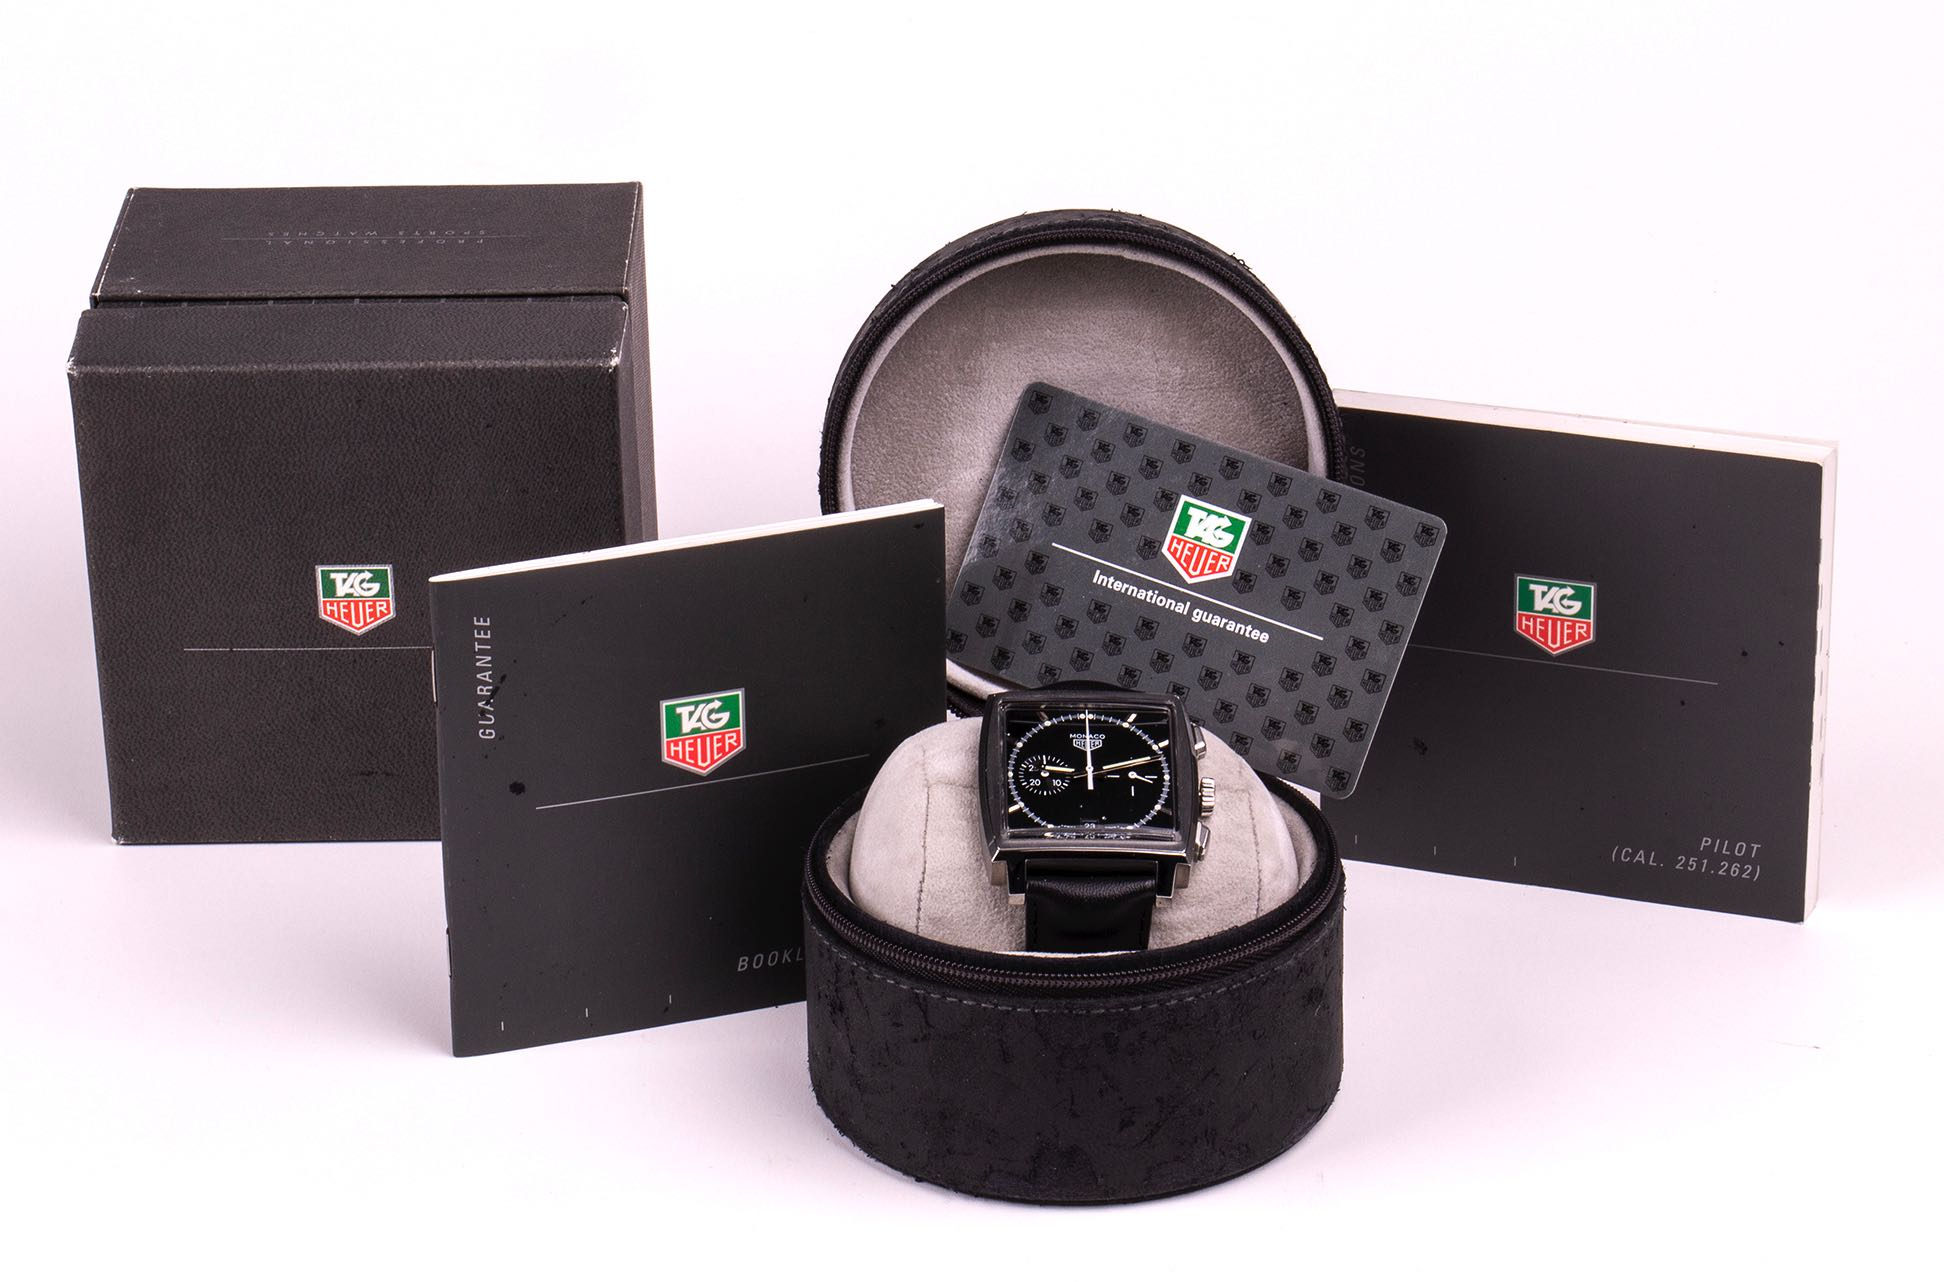 Heuer Monaco Chronograph Limited Edition 5000 pcs. by Tag Heuer ref: CS2110 - Image 3 of 3